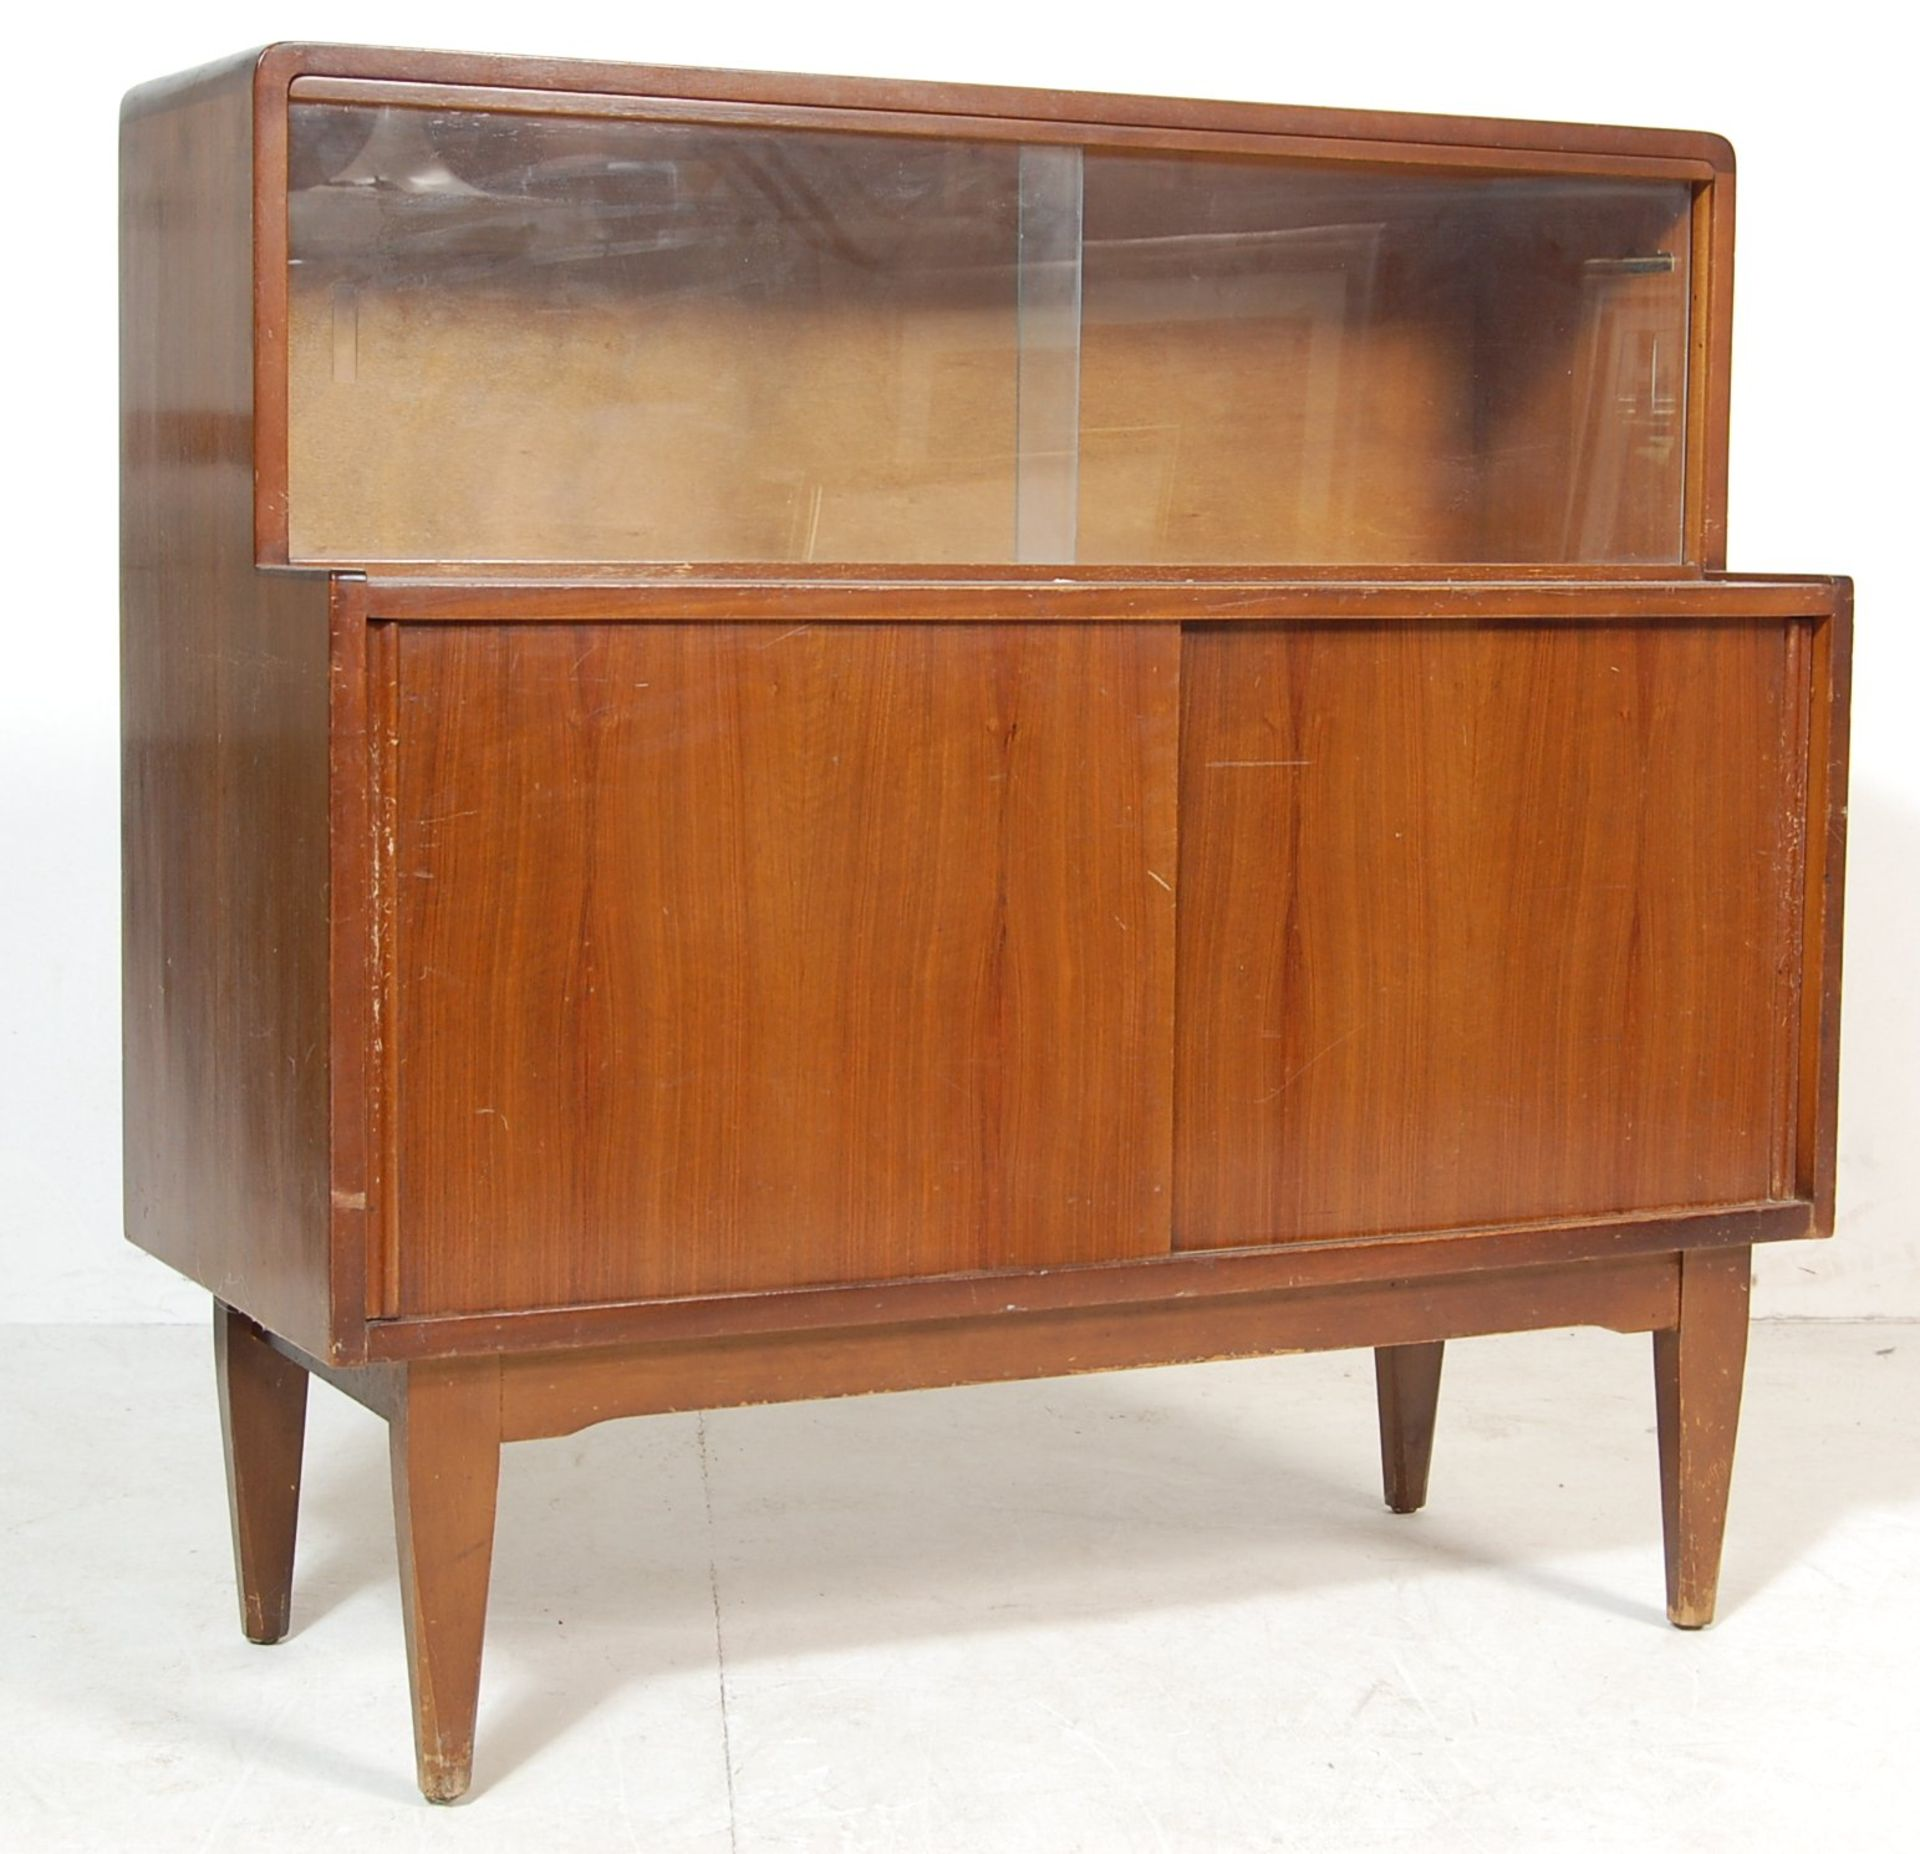 RETRO VINTAGE MID CENTURY TEAK WOOD HIGHBOARD